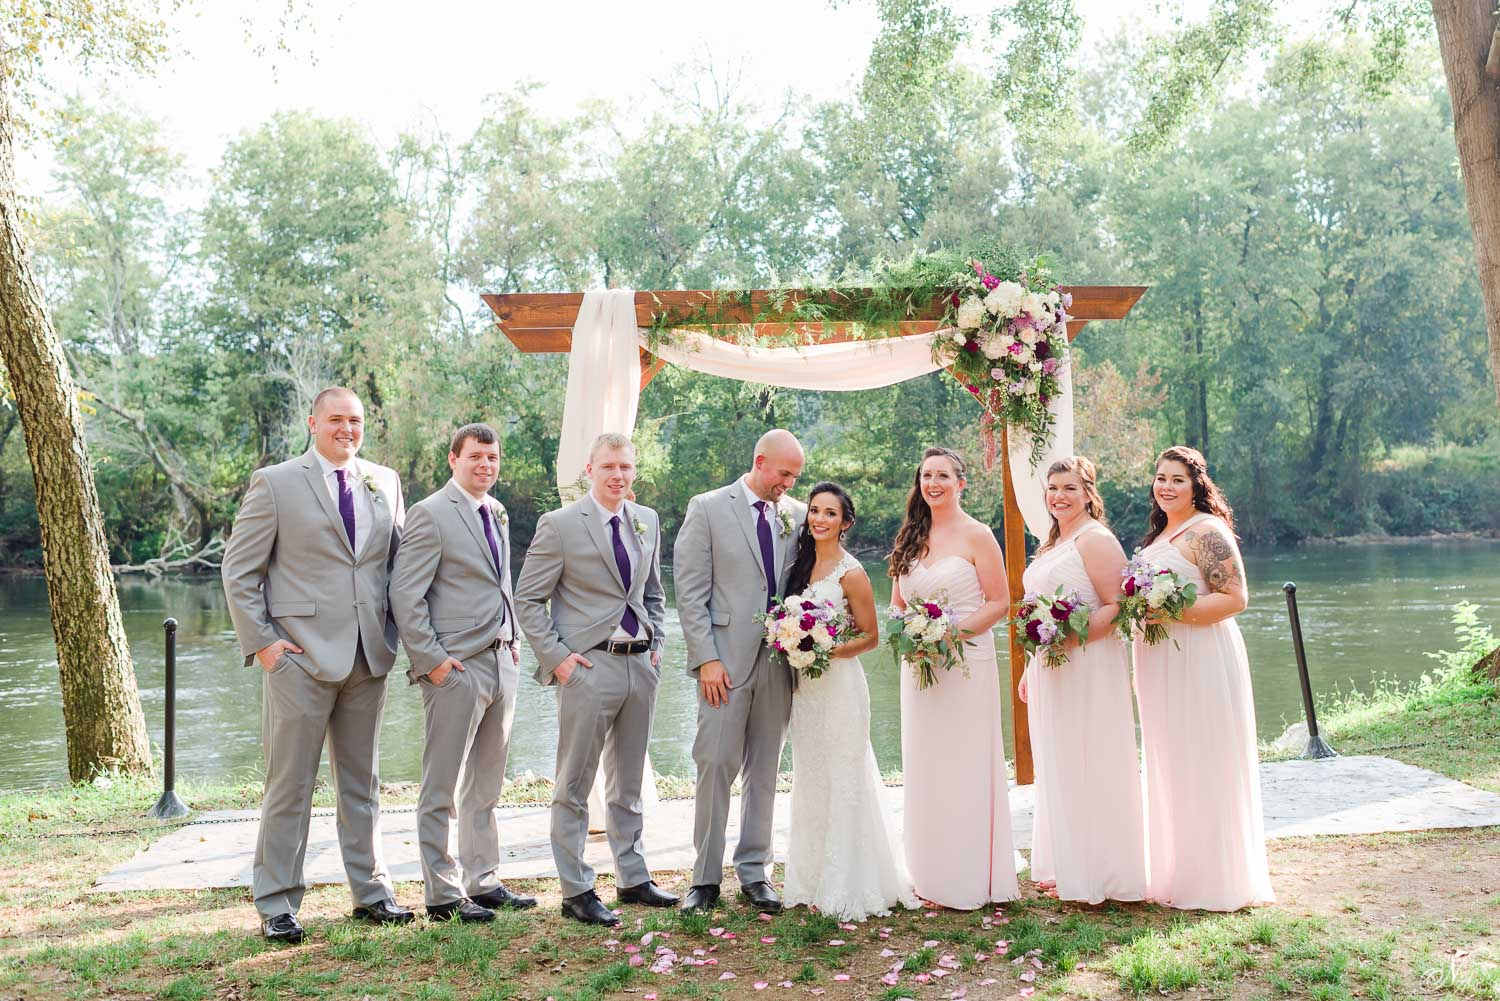 wedding party in front of wedding arch on hiwassee river